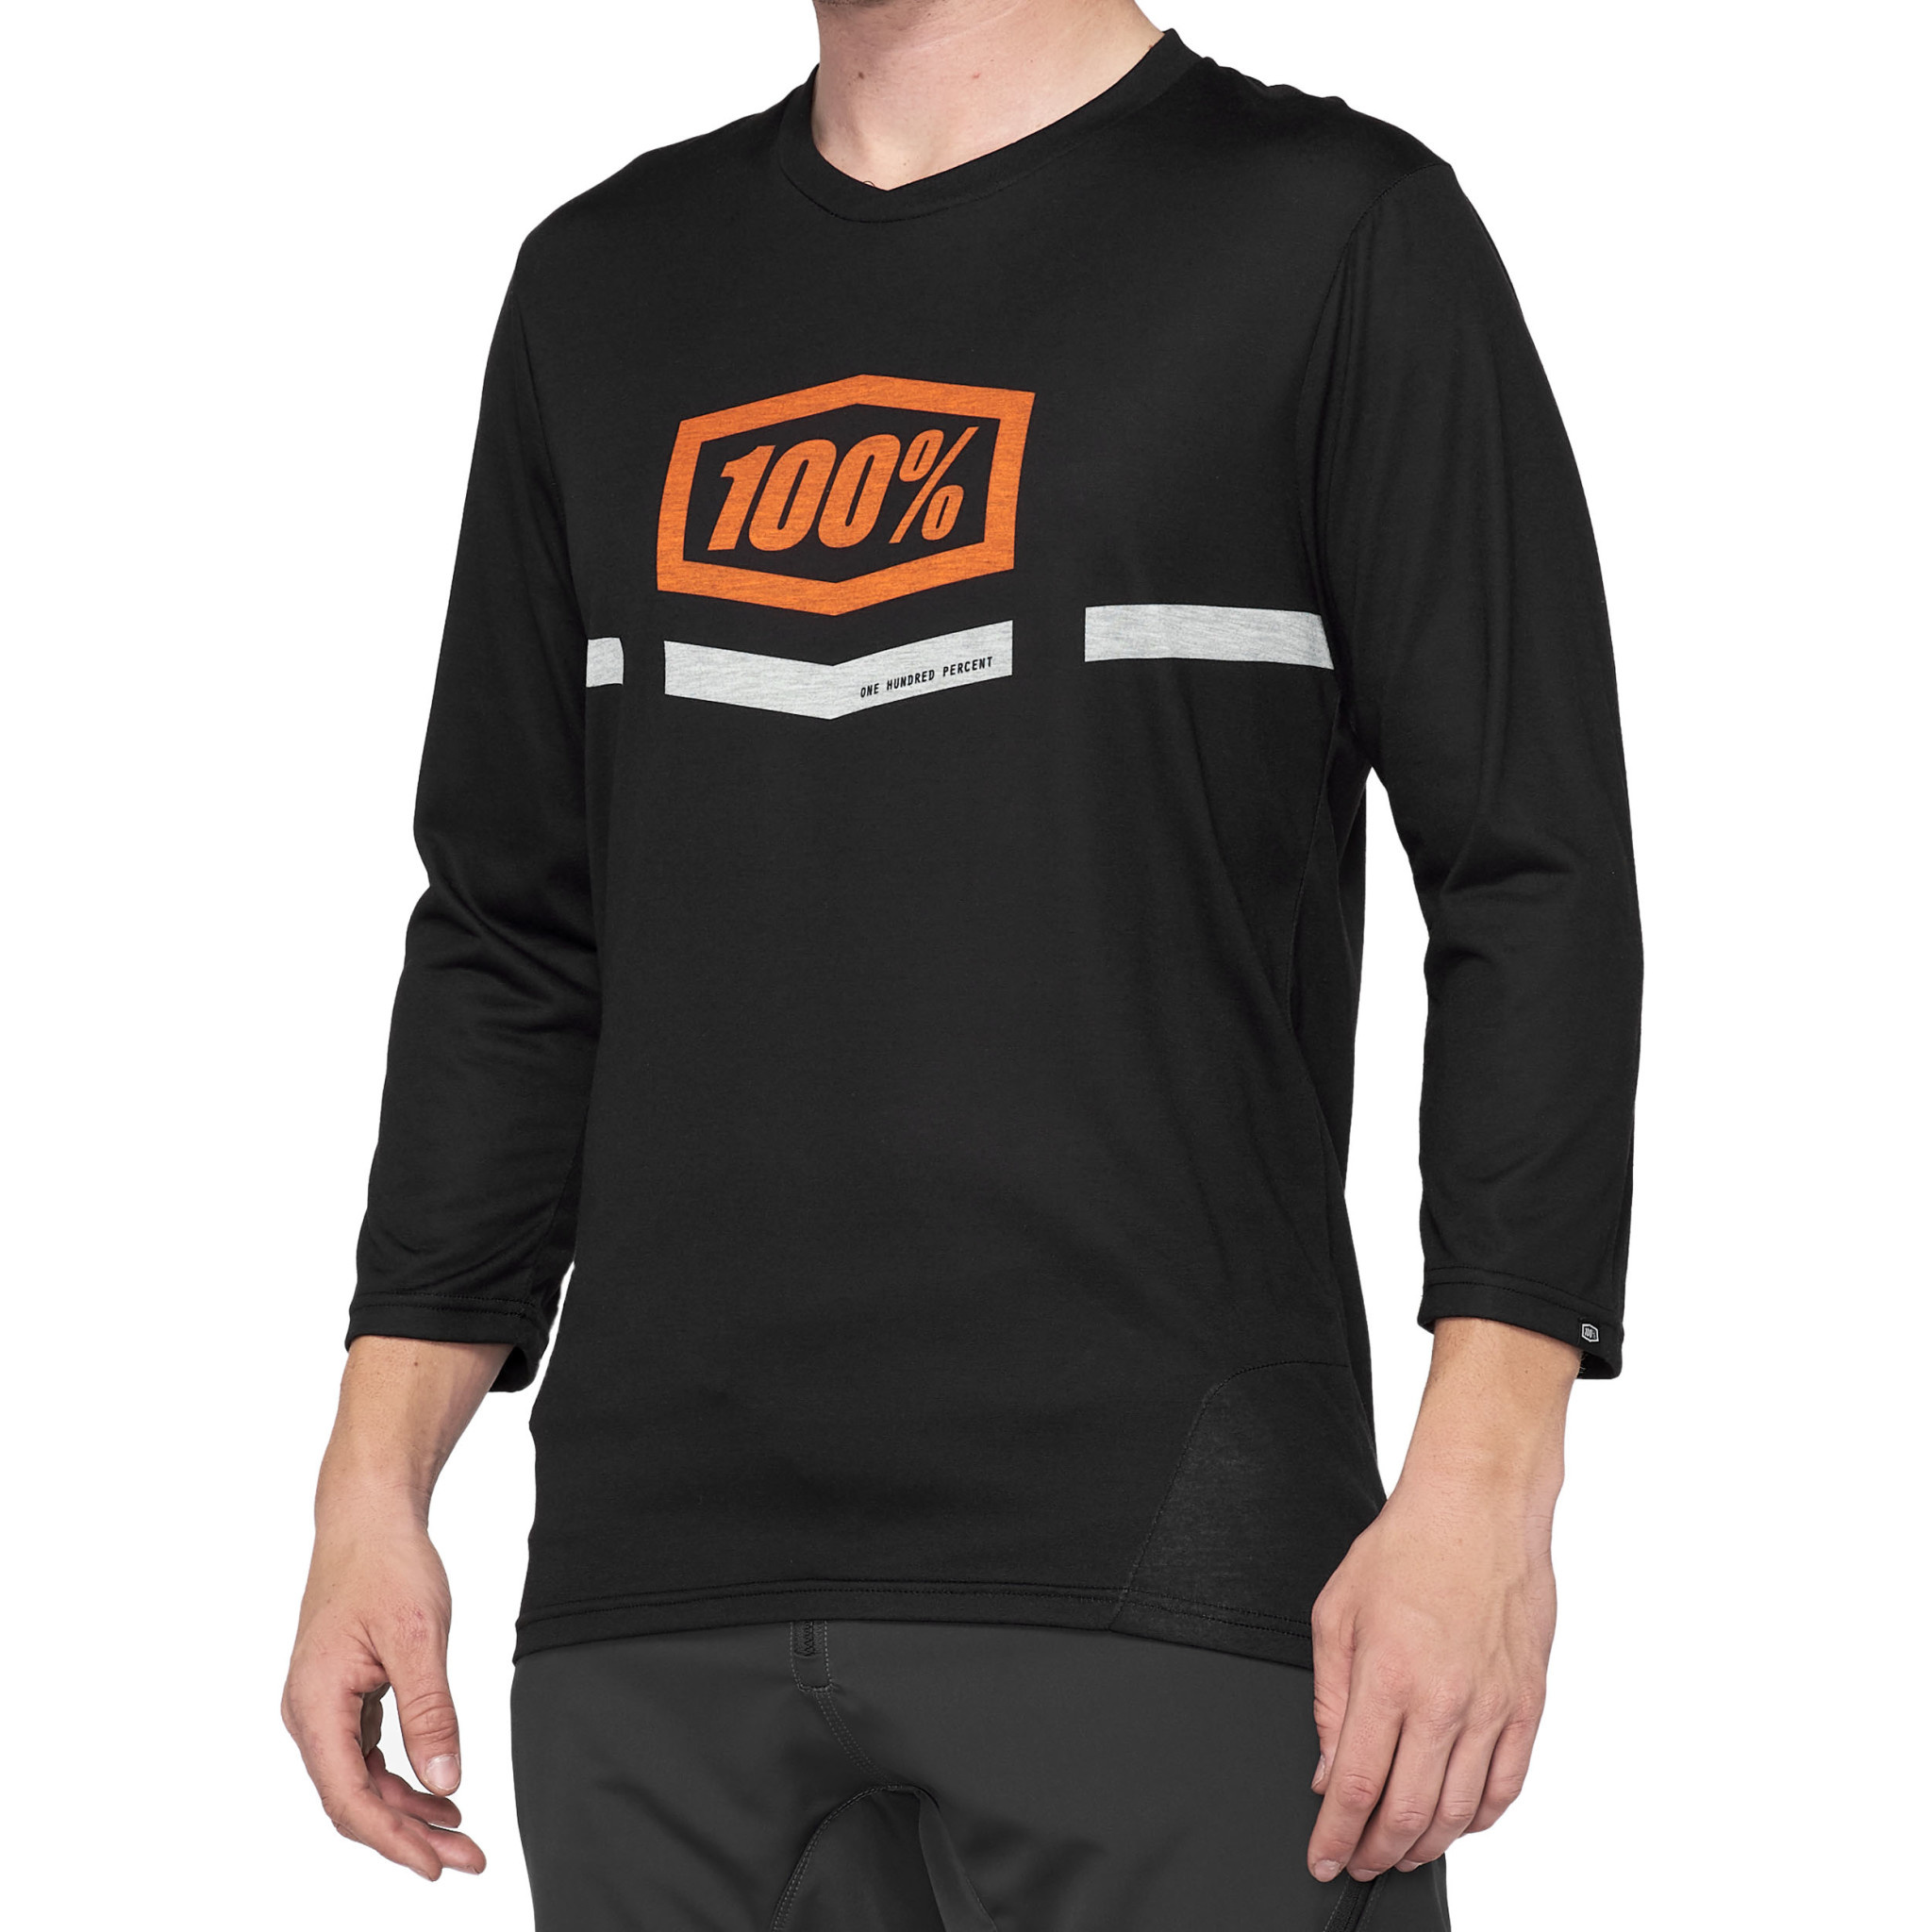 Airmatic Jersey 3/4 Sleeve-7